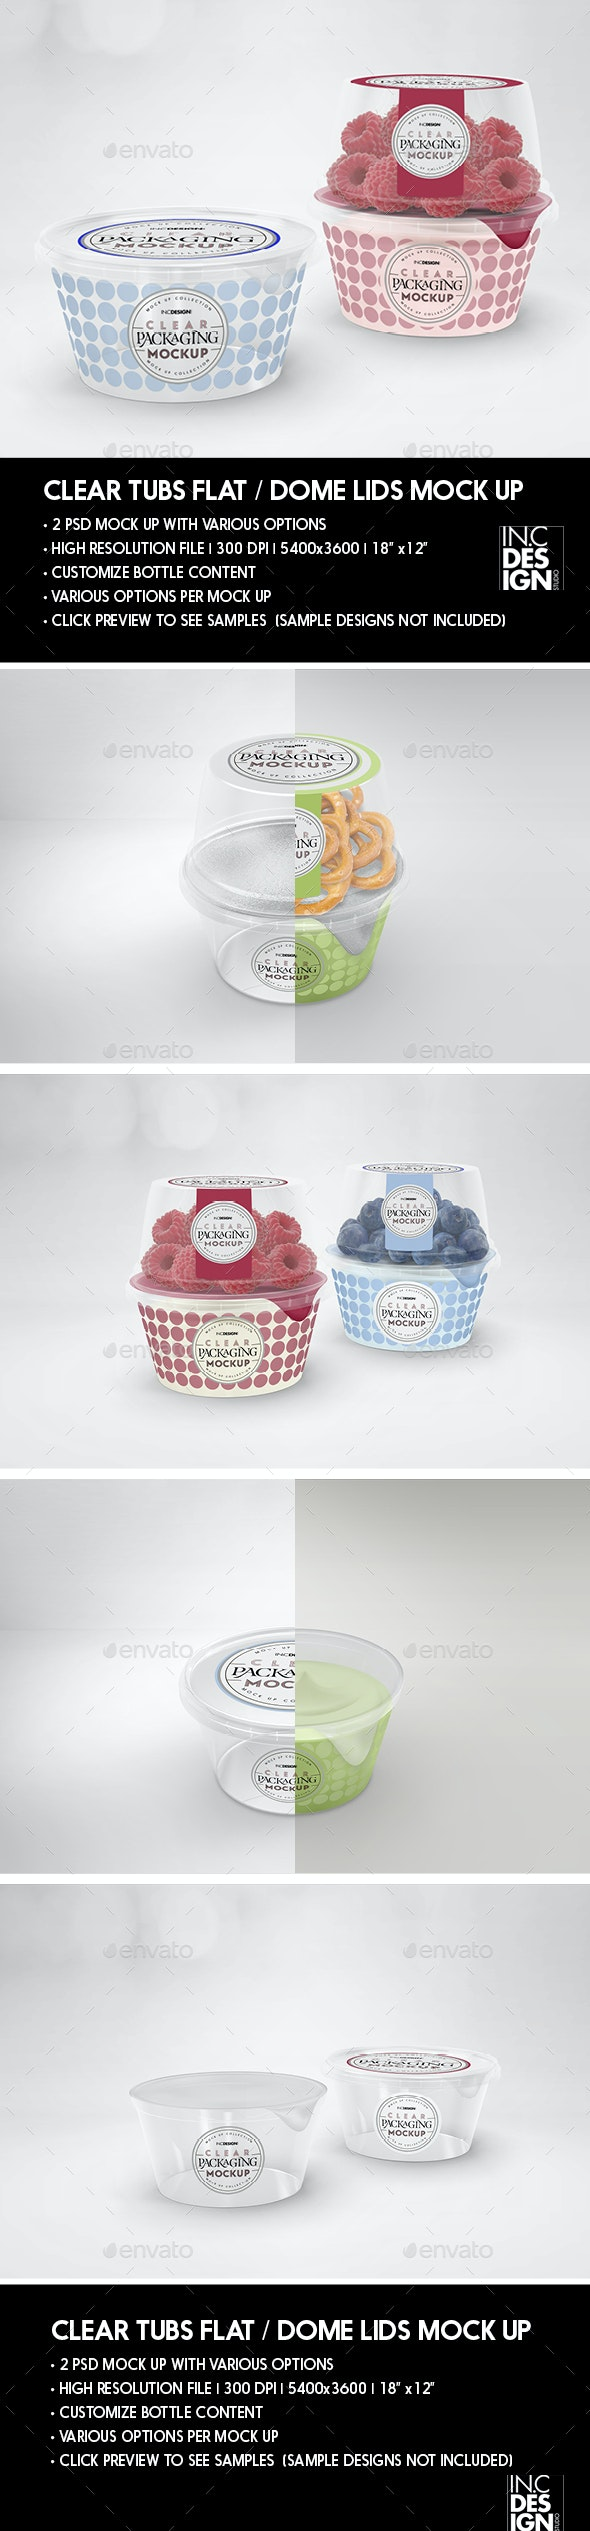 Clear Tubs Flat or Dome Lid Packaging Mockup - Product Mock-Ups Graphics